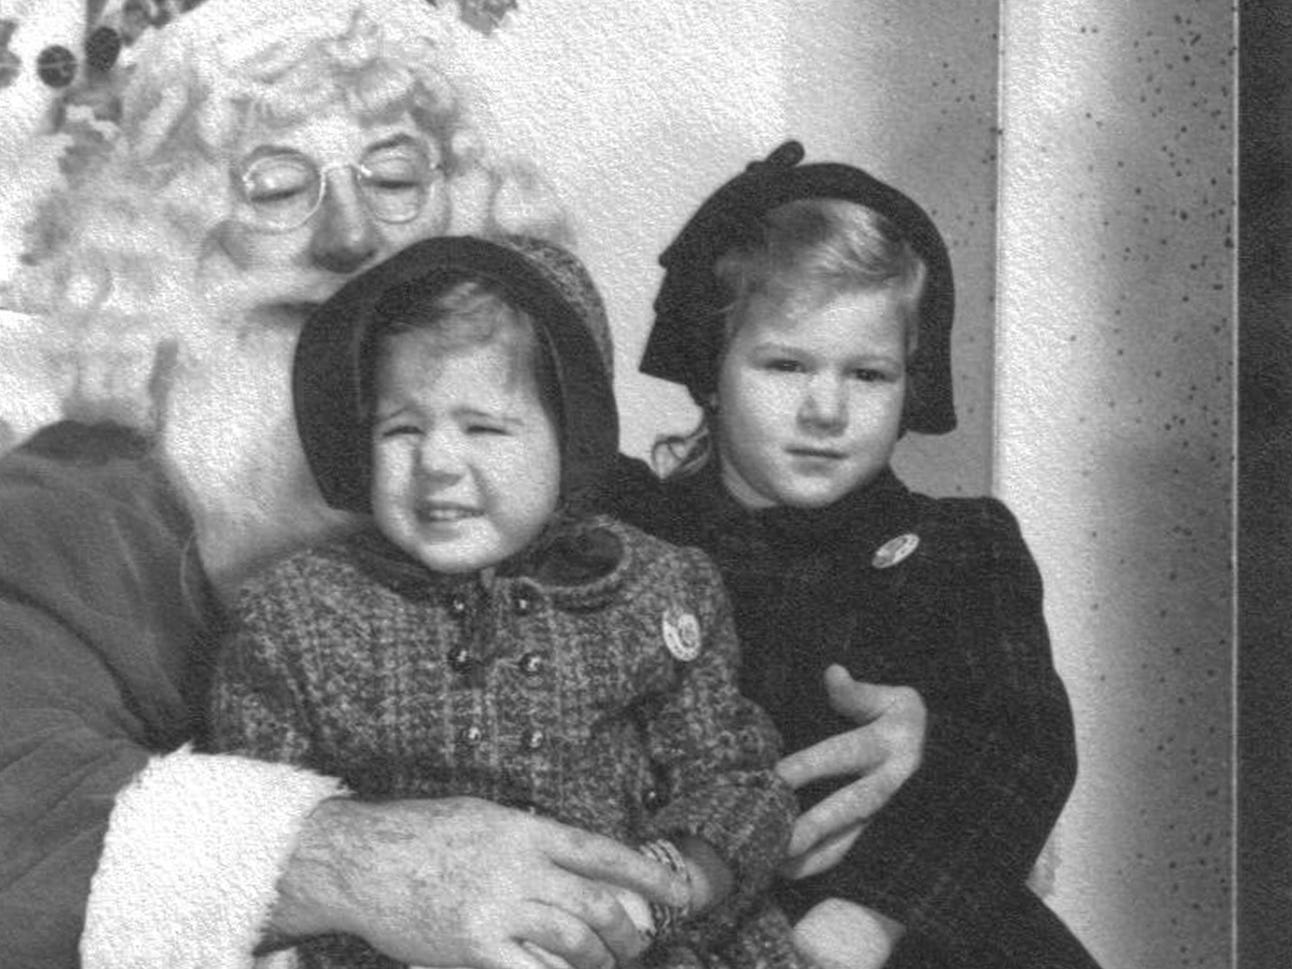 "Beth Watkins, of York Township, of her and her sister, Cindy with Santa in 1959 at the Bon-Ton.  Beth states, ""I would have been 2 and my sister, Cindy, would have been 3 1/2.  Of course, I do not remember the actual photo/visit with Santa, but Mom confirmed the year with me and that our outfits (coats/leggings and matching hats) came from Conners, a children's store on West Market Street. Our Nanna Thomas bought the outfits for us, according to Mom.  This photo is really special to me these last several years, because we lost my sister Cindy to cancer in 2003, so the photo has been put out every holiday season since."""